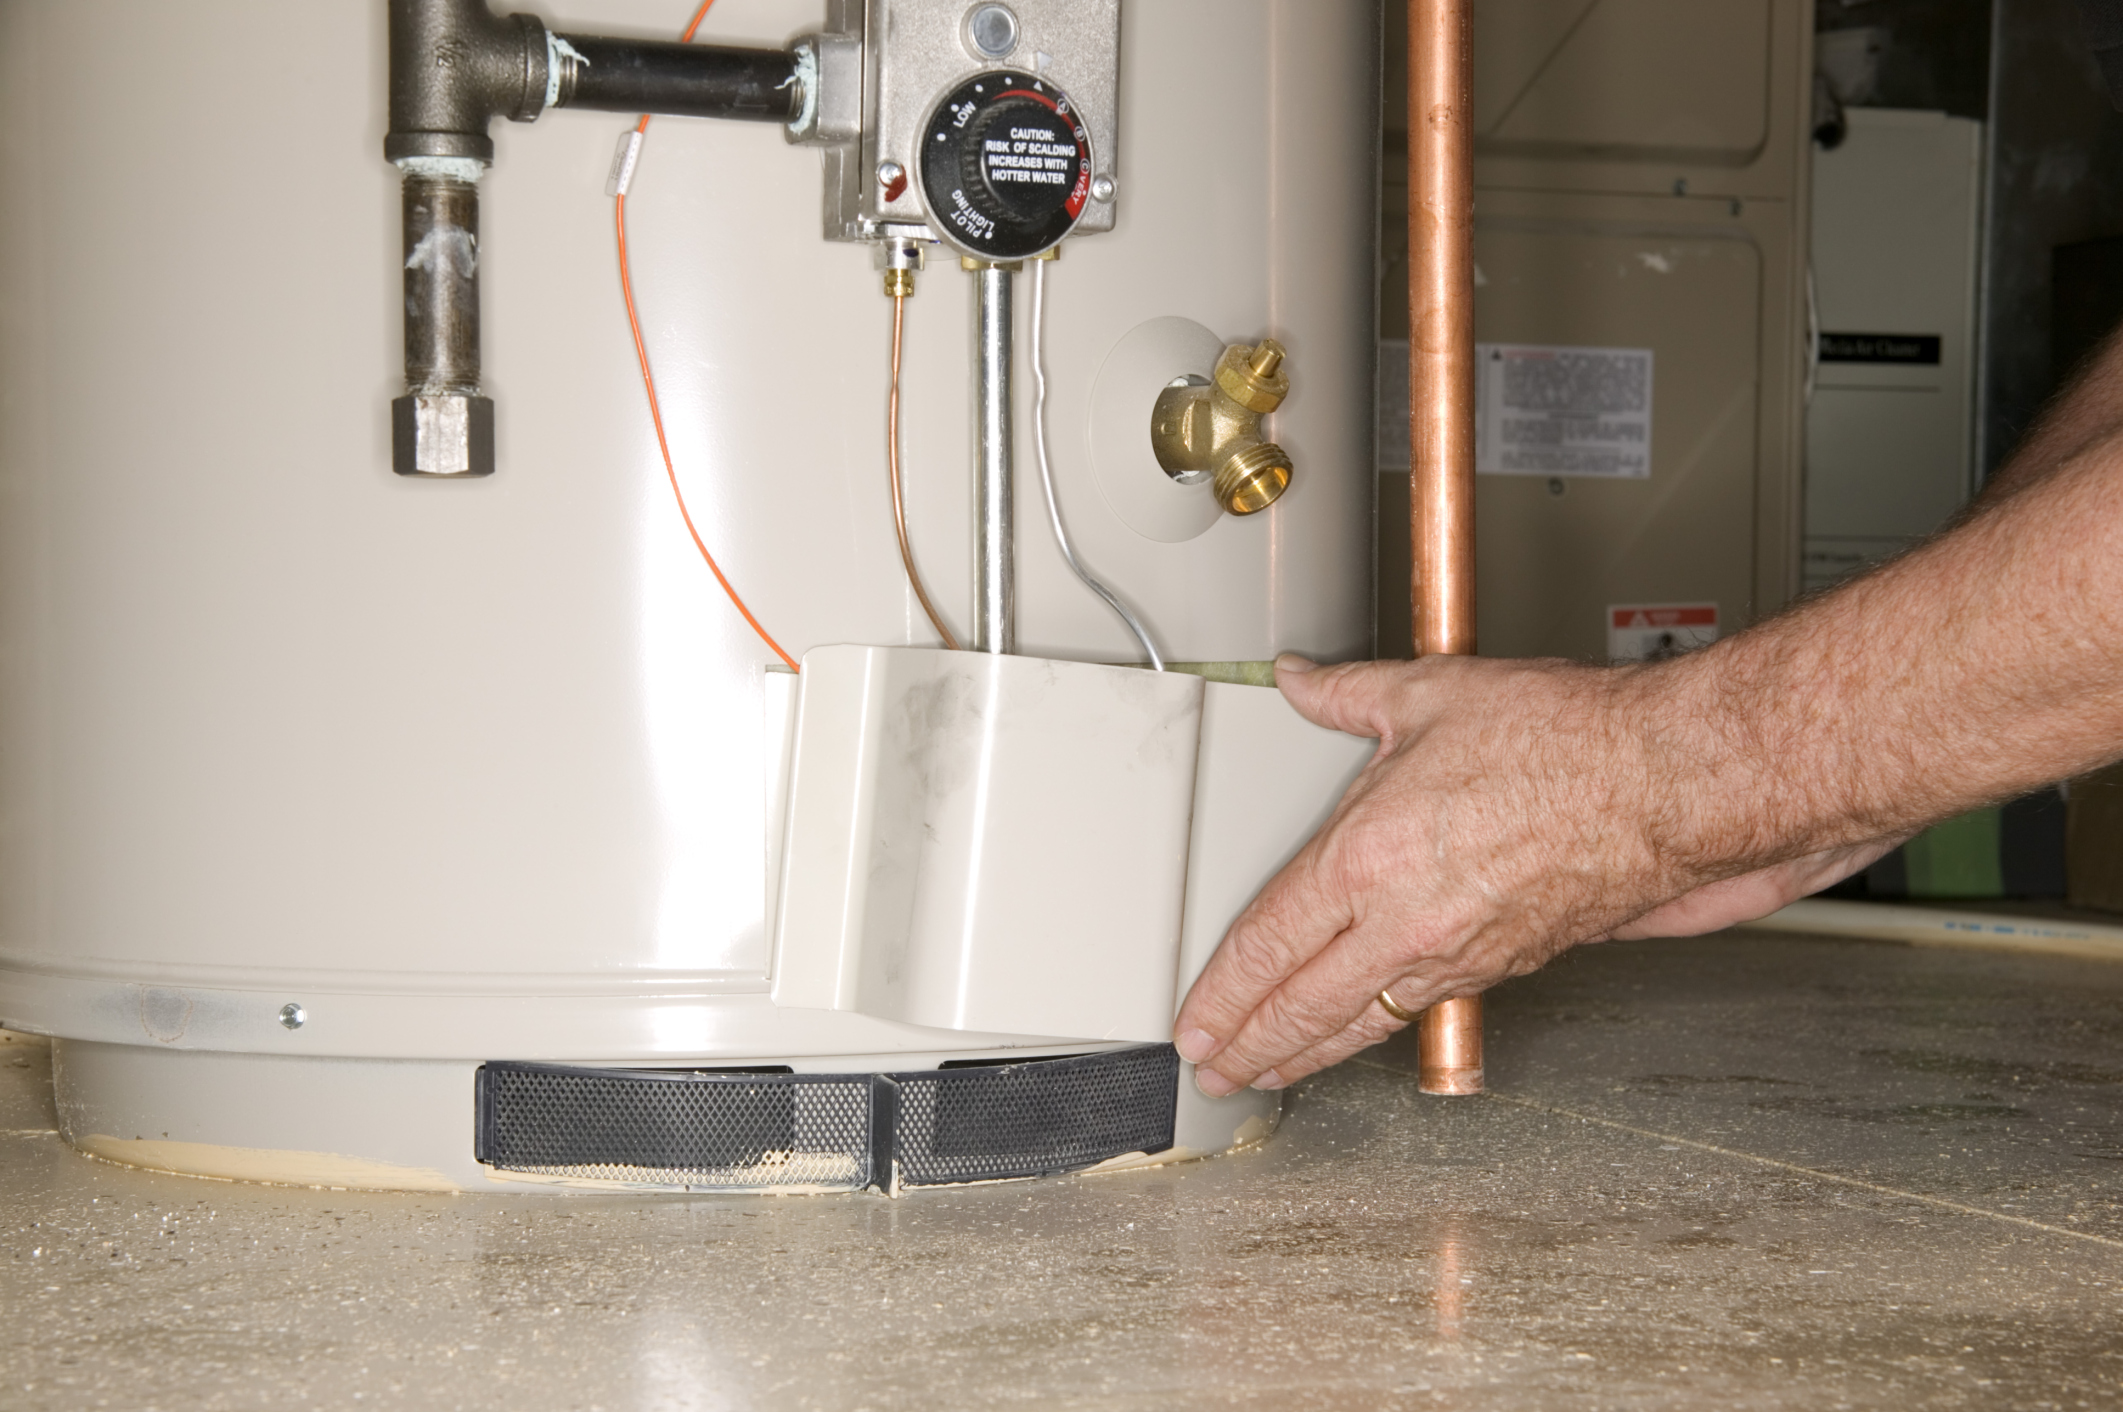 Does Discoloration in Hot Water Mean a Water Heater Is Going Bad ...